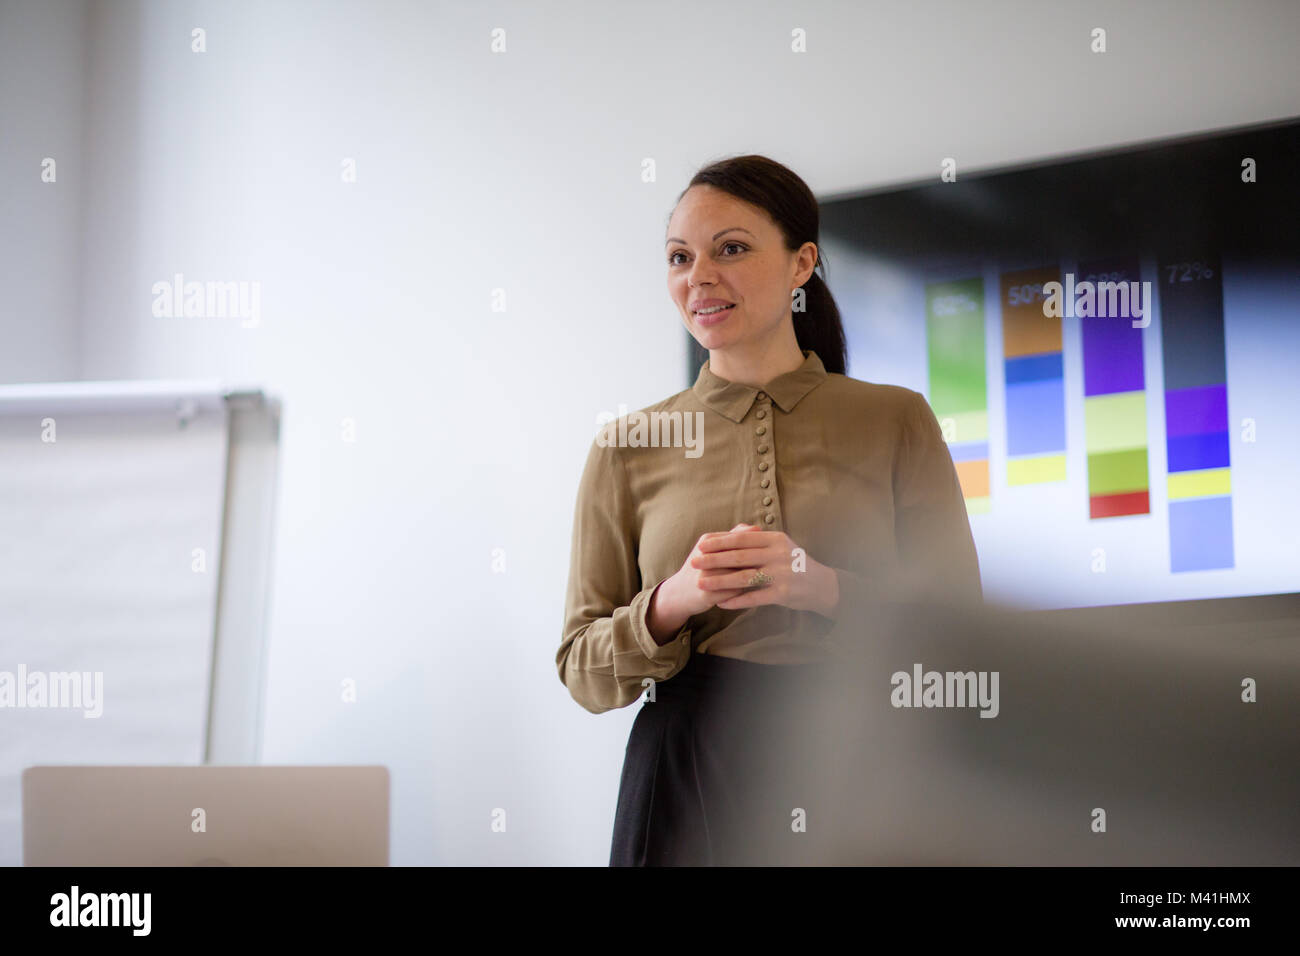 Female business executive giving a presentation - Stock Image